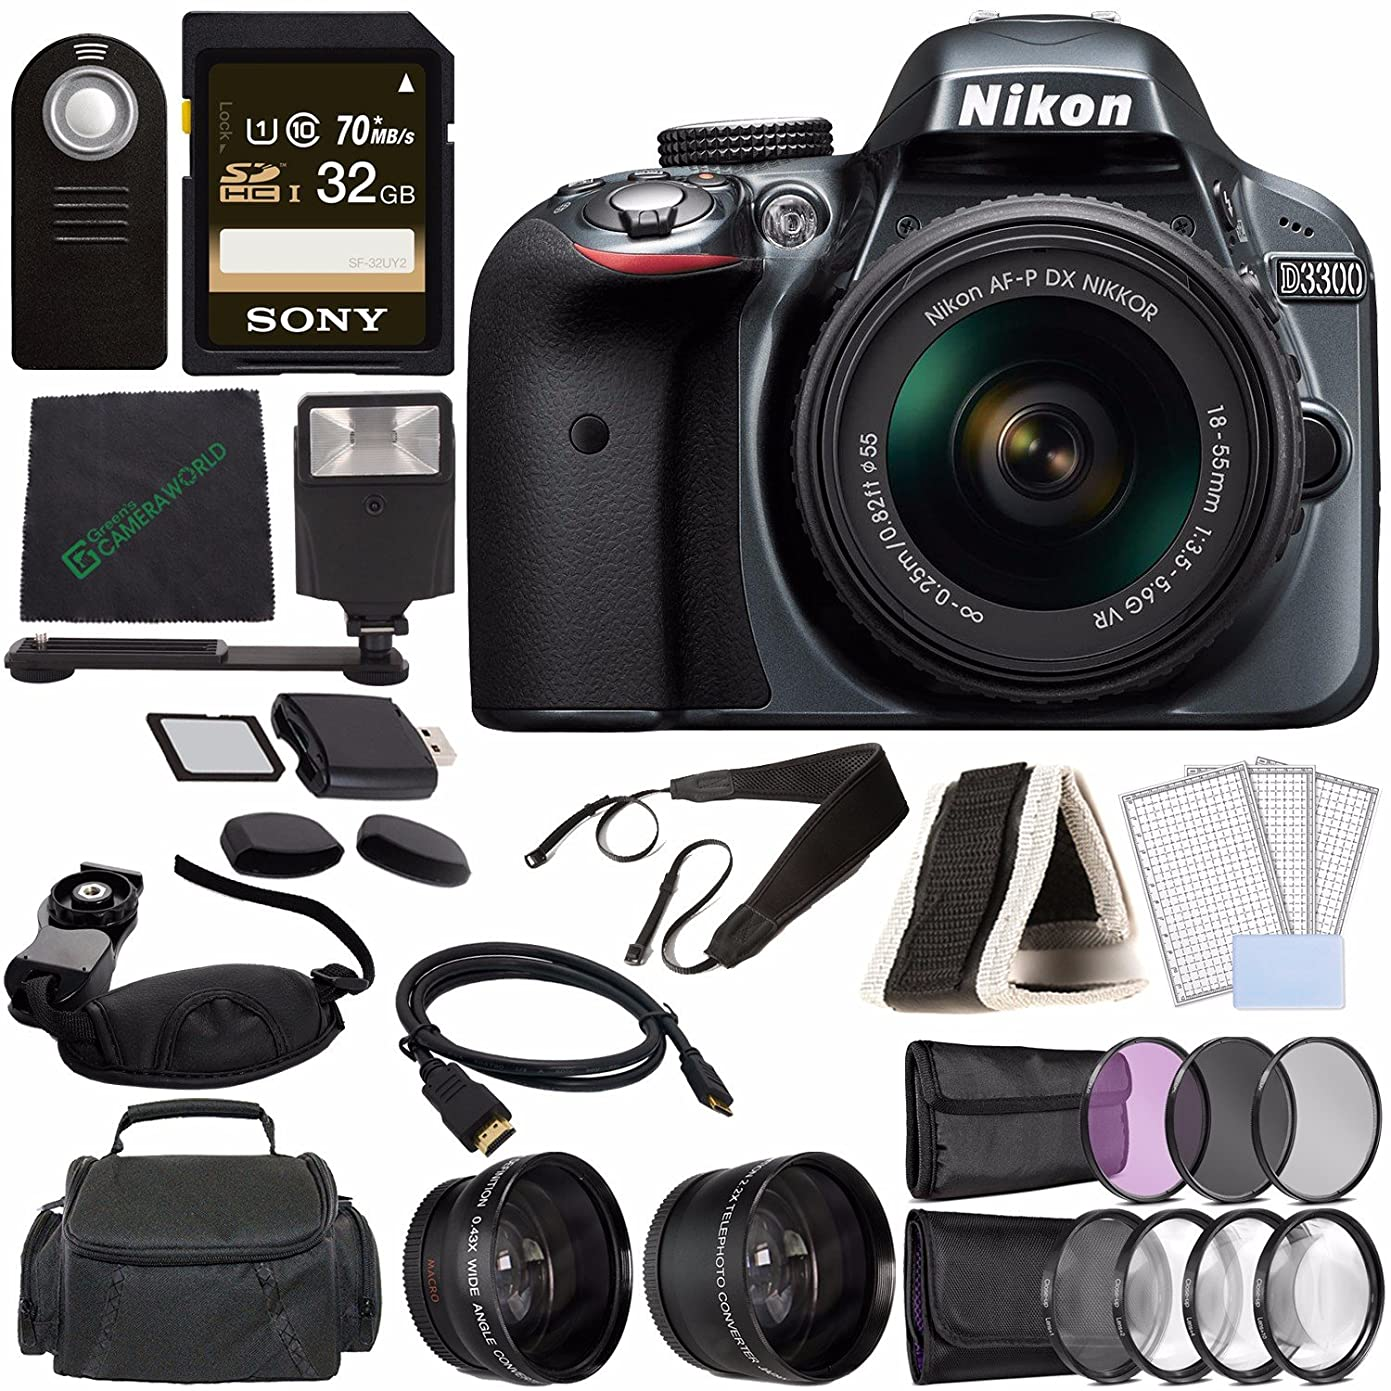 Nikon D3300 DSLR Camera with 18-55mm Lens (Grey) + Sony 32GB UHS-I SDHC Memory Card (Class 10) + Remote + Flash + Cleaning Cloth Bundle lm85510709